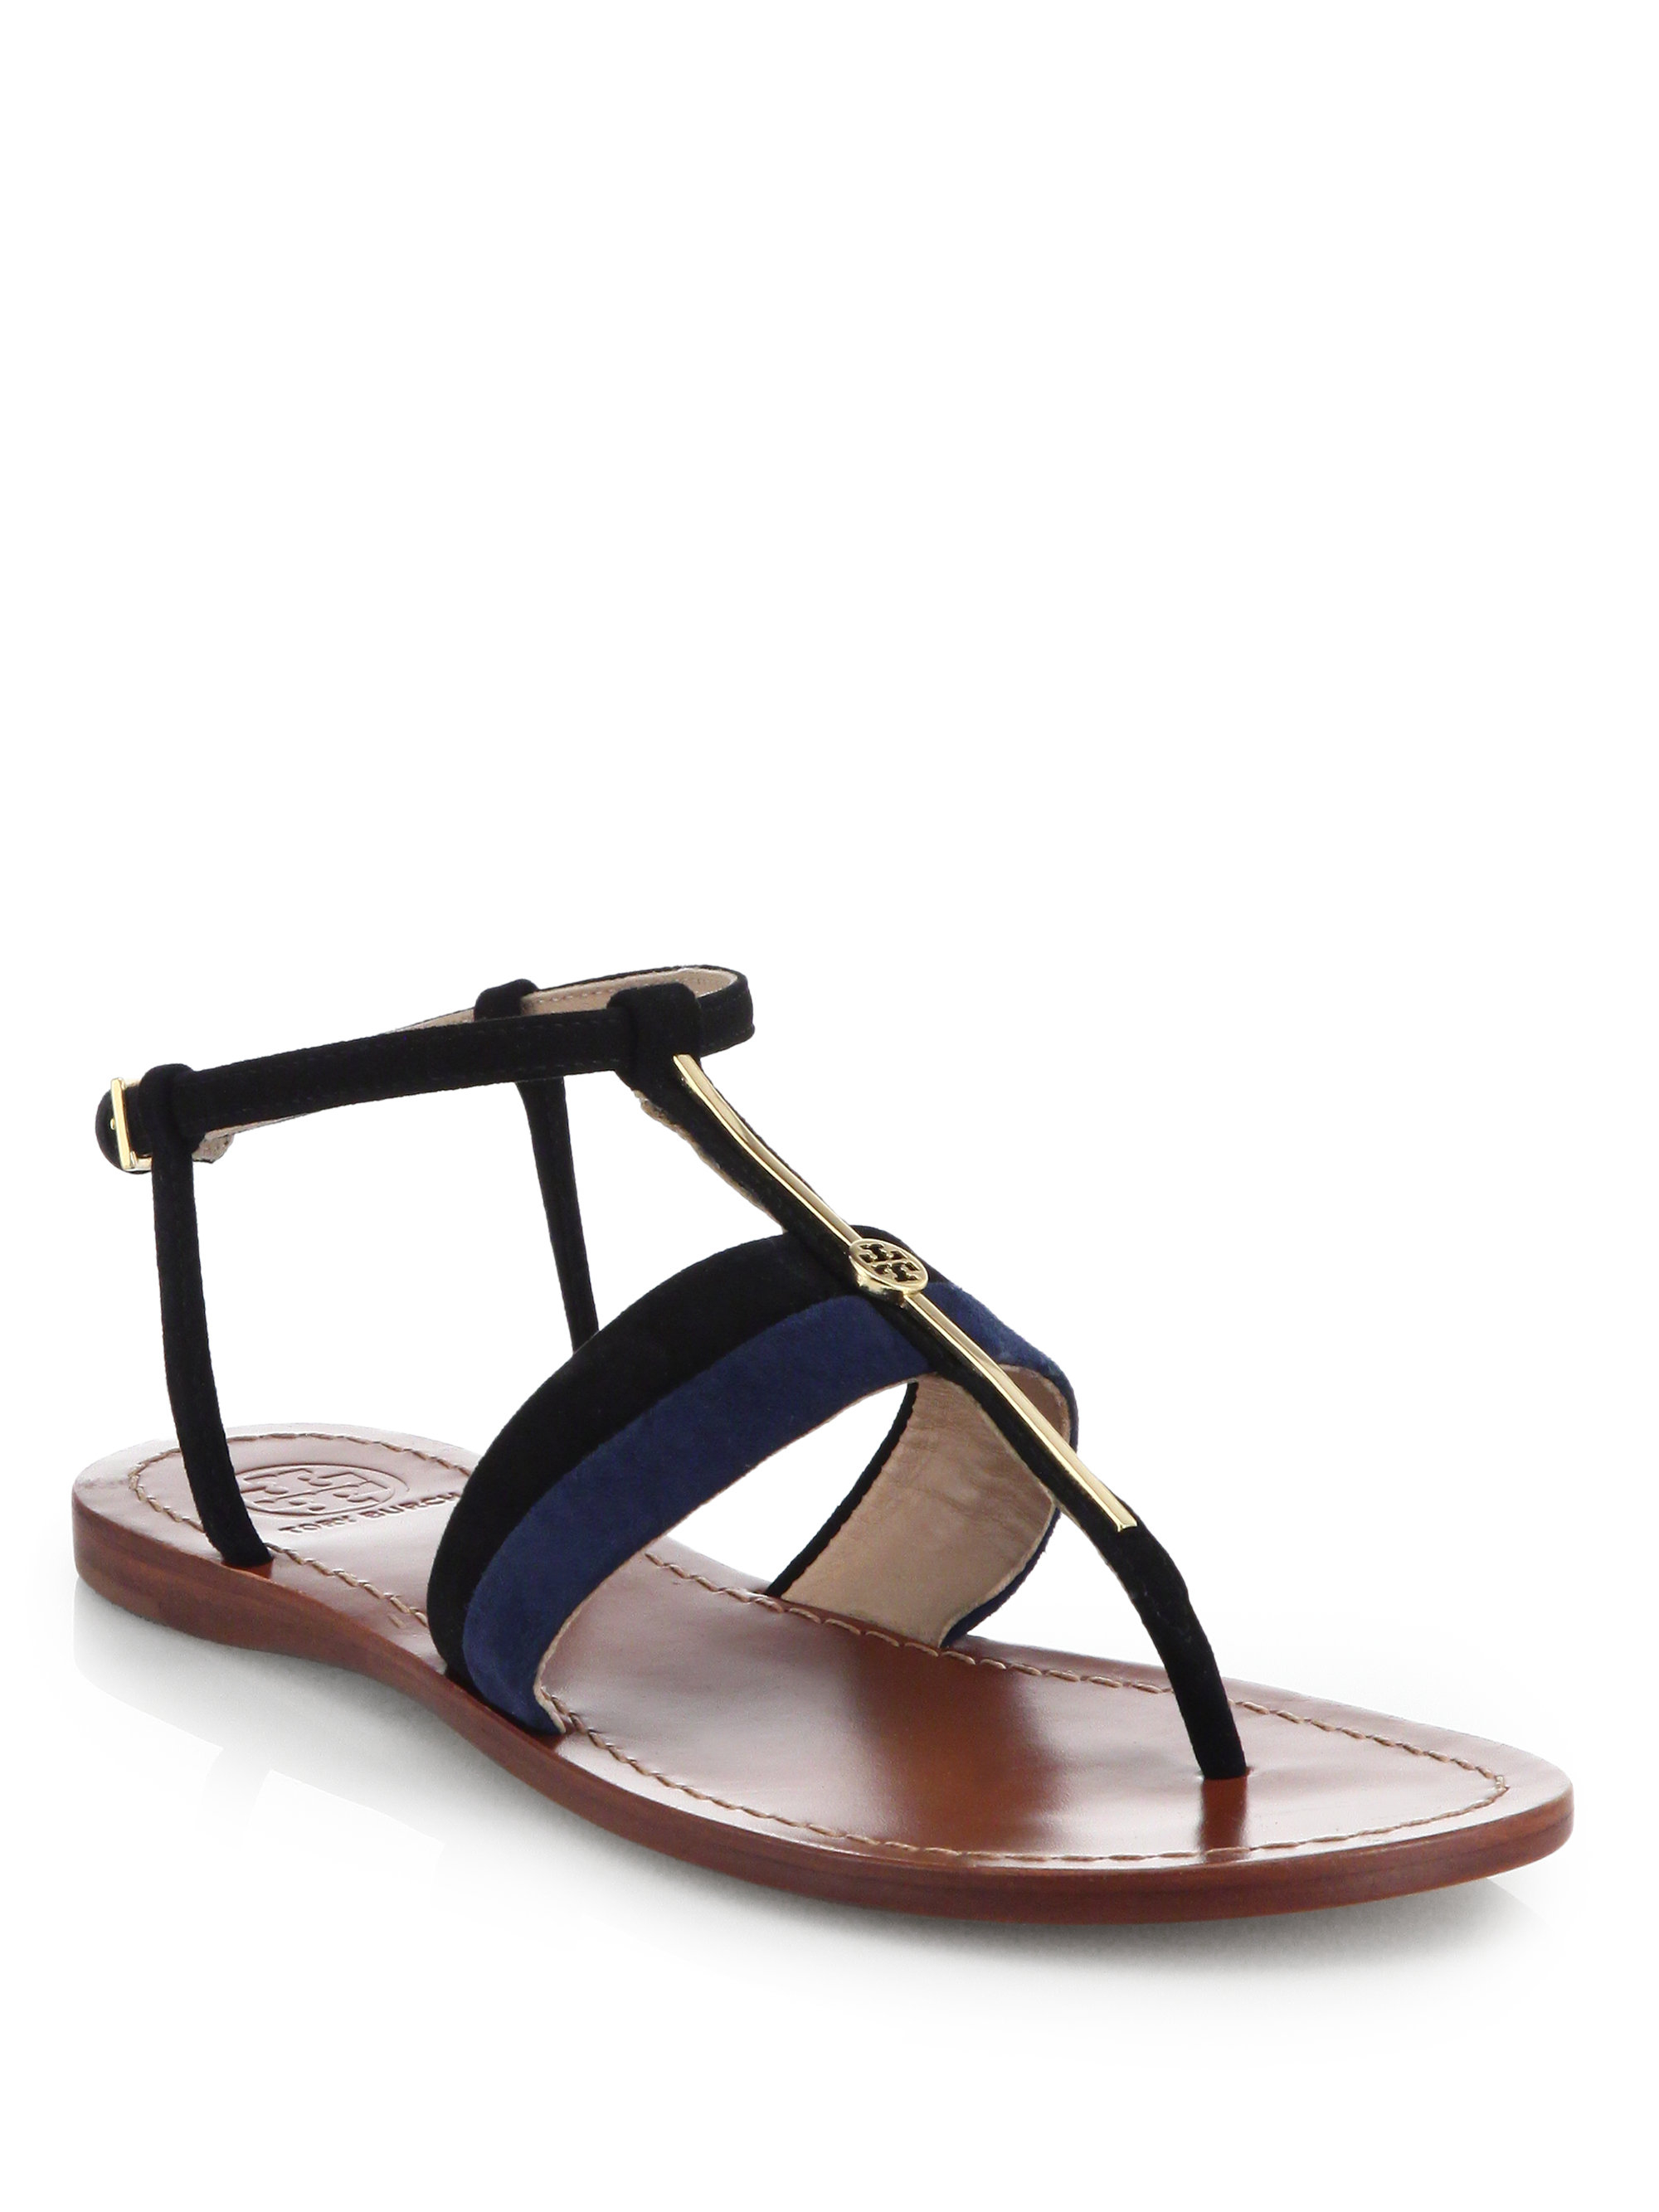 Two Strap Flat Sandals Black Leather